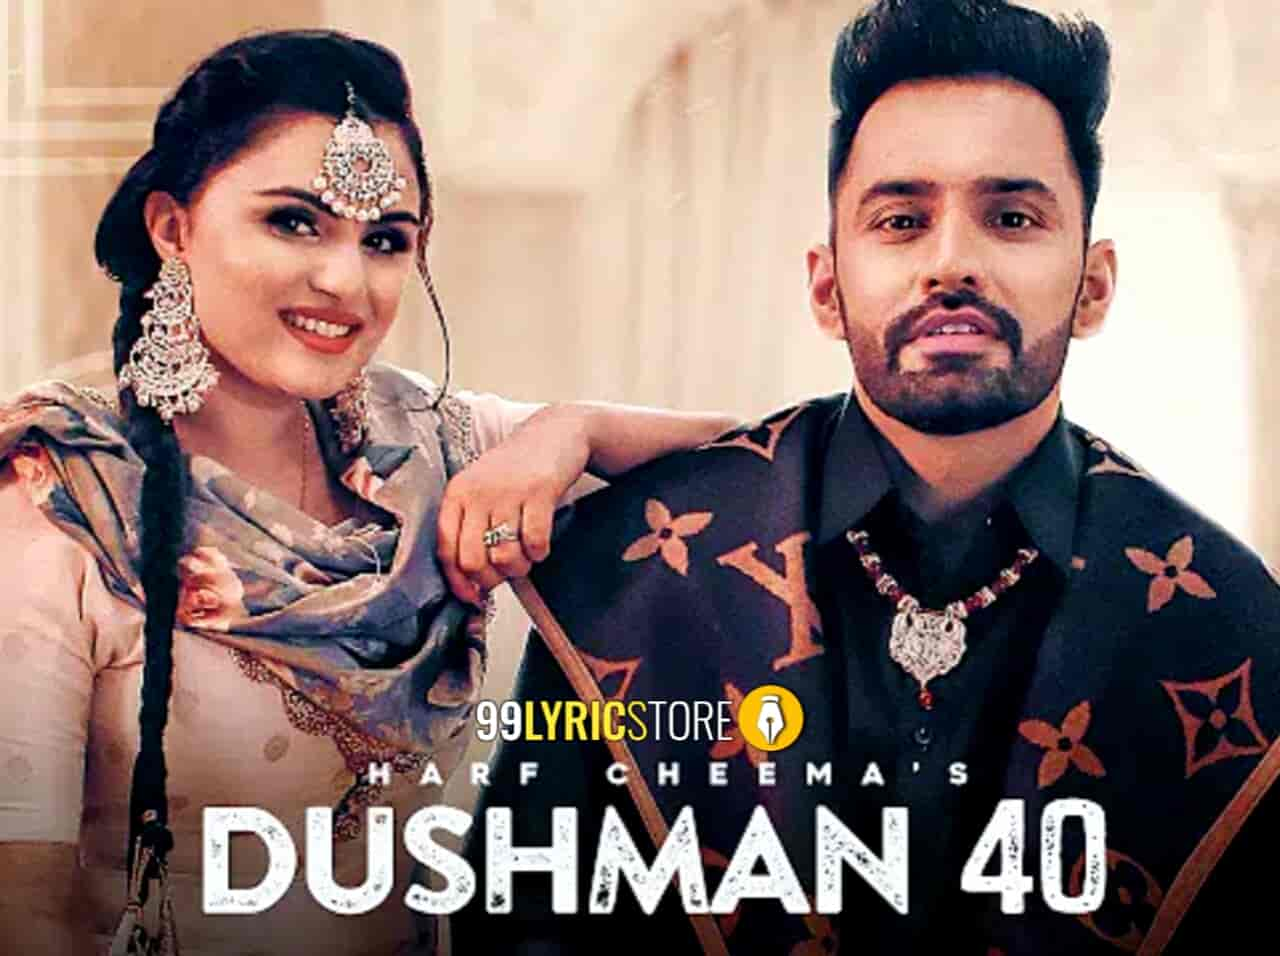 Dushman 40 Lyrics :- The Harf Cheema and Gulrej Akthar comes up together and bring a new punjabi track which is titled Dushman 40 sung by both. Music of this song master Deep Jandu while this brand new punjabi song Dushman 40 Lyrics are penned by Harf Cheema himself. Video of this song given by Savio Sandhu. This song is presented by Geet Mp3 label.